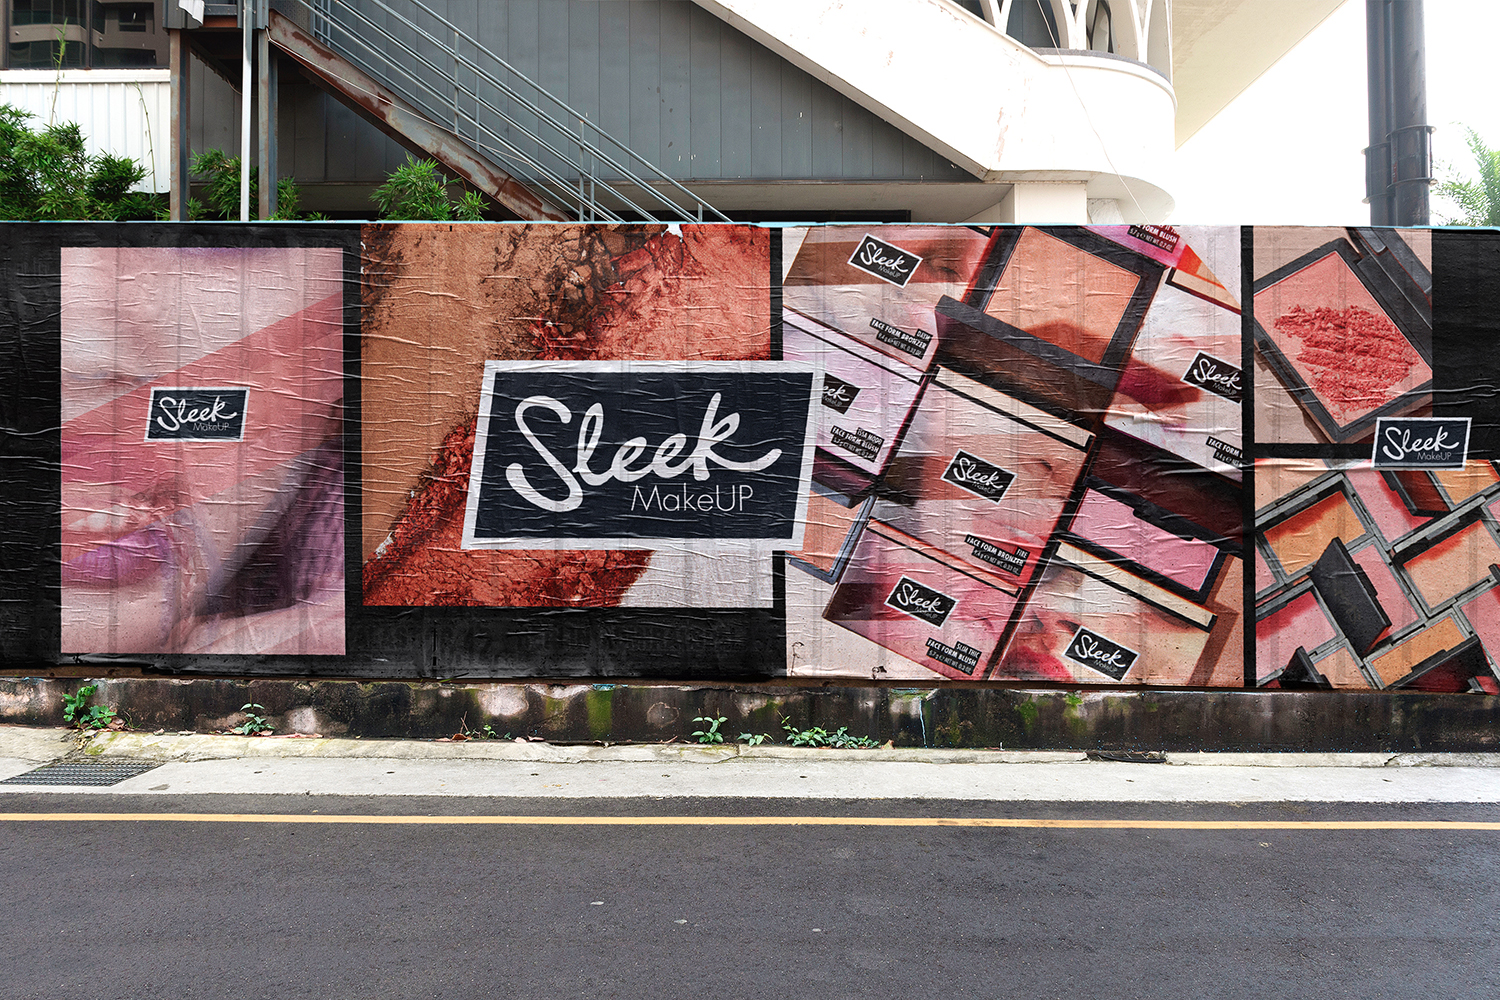 Our bold new look for Sleek makeup